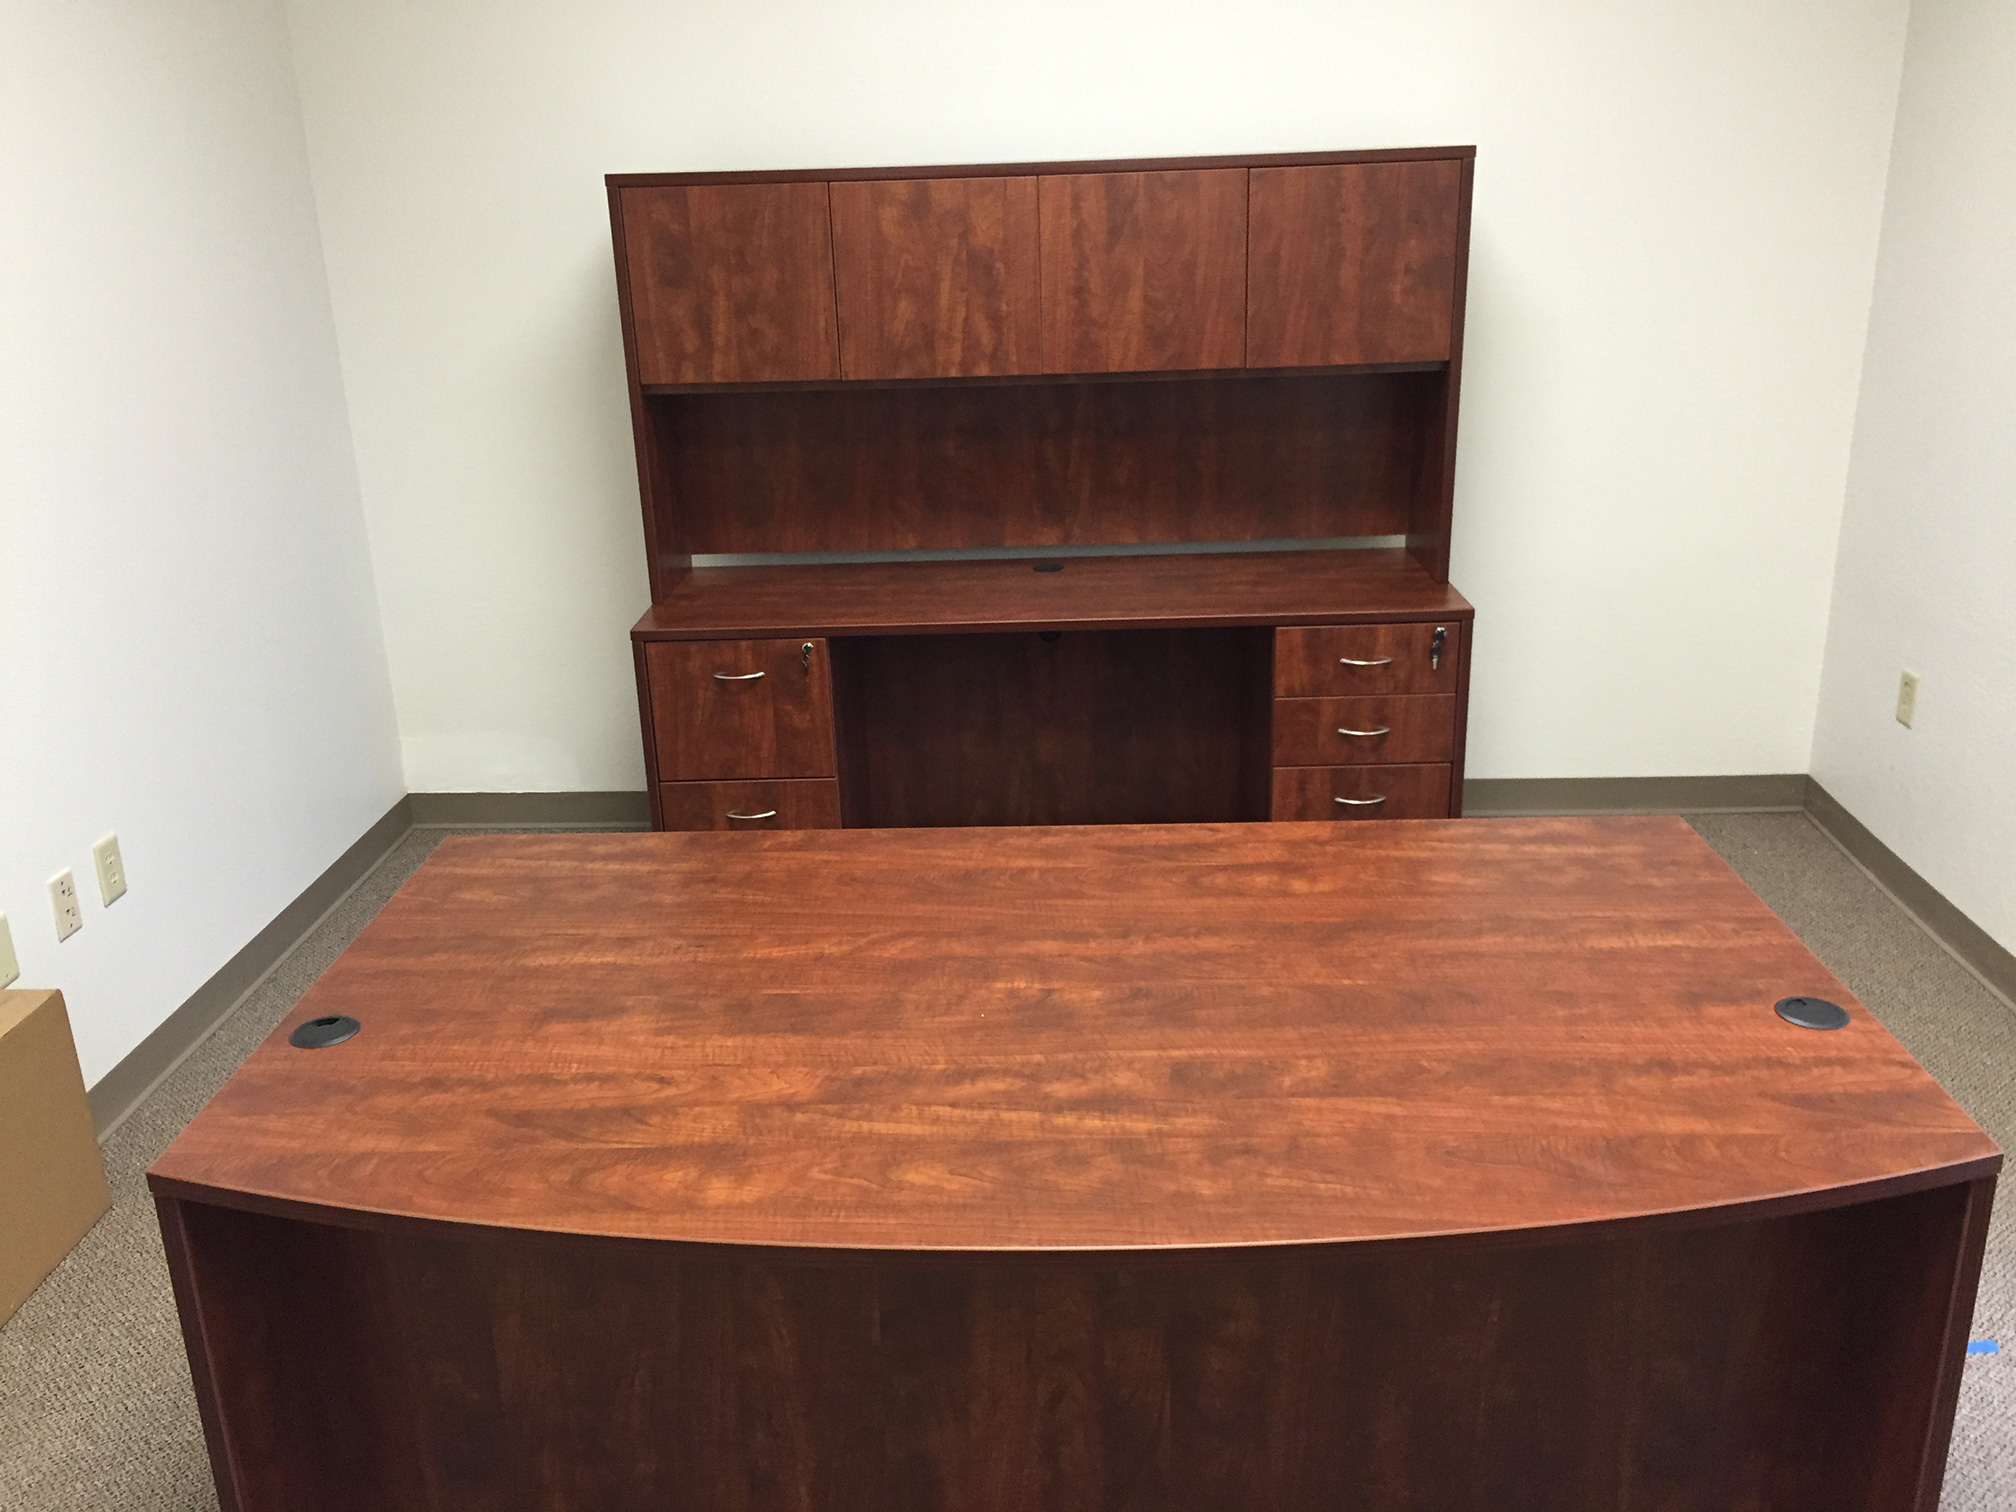 office-furniture-storage-manasota-office-supplies-llc.jpg